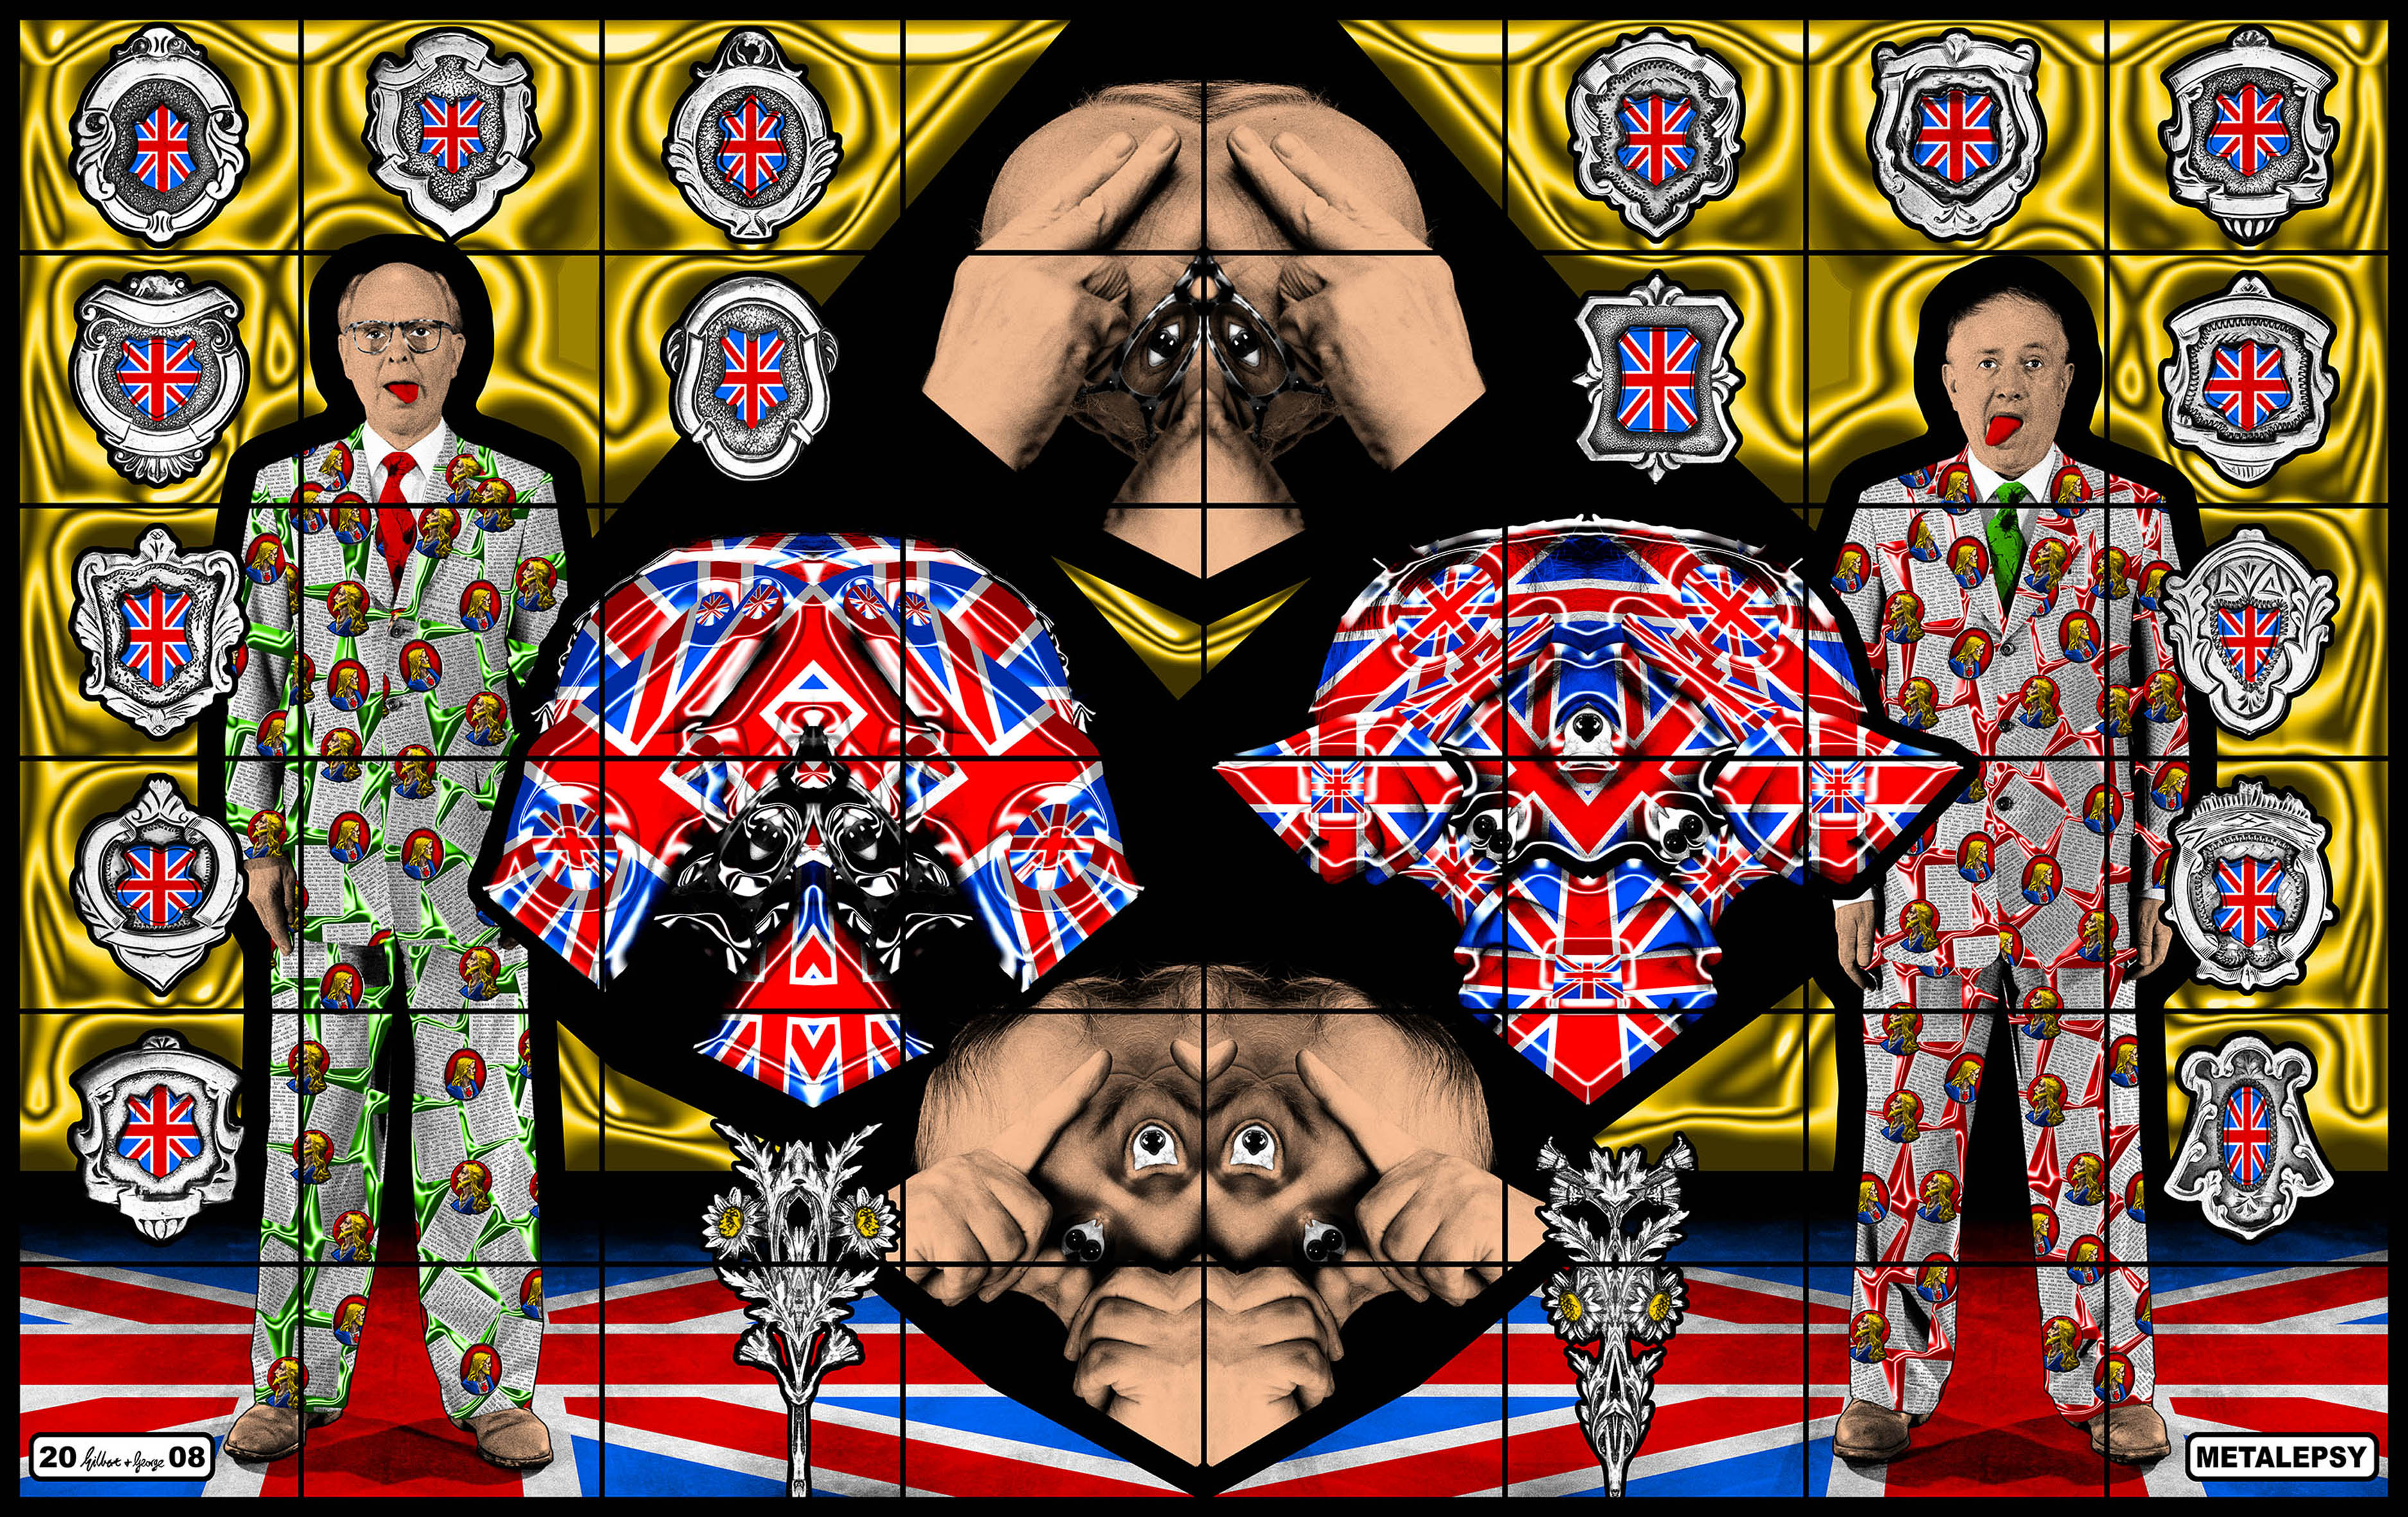 Gilbert & George Metalepsy 2008 381x604 cm Courtesy: Gli artisti e White Cube © Gilbert & George